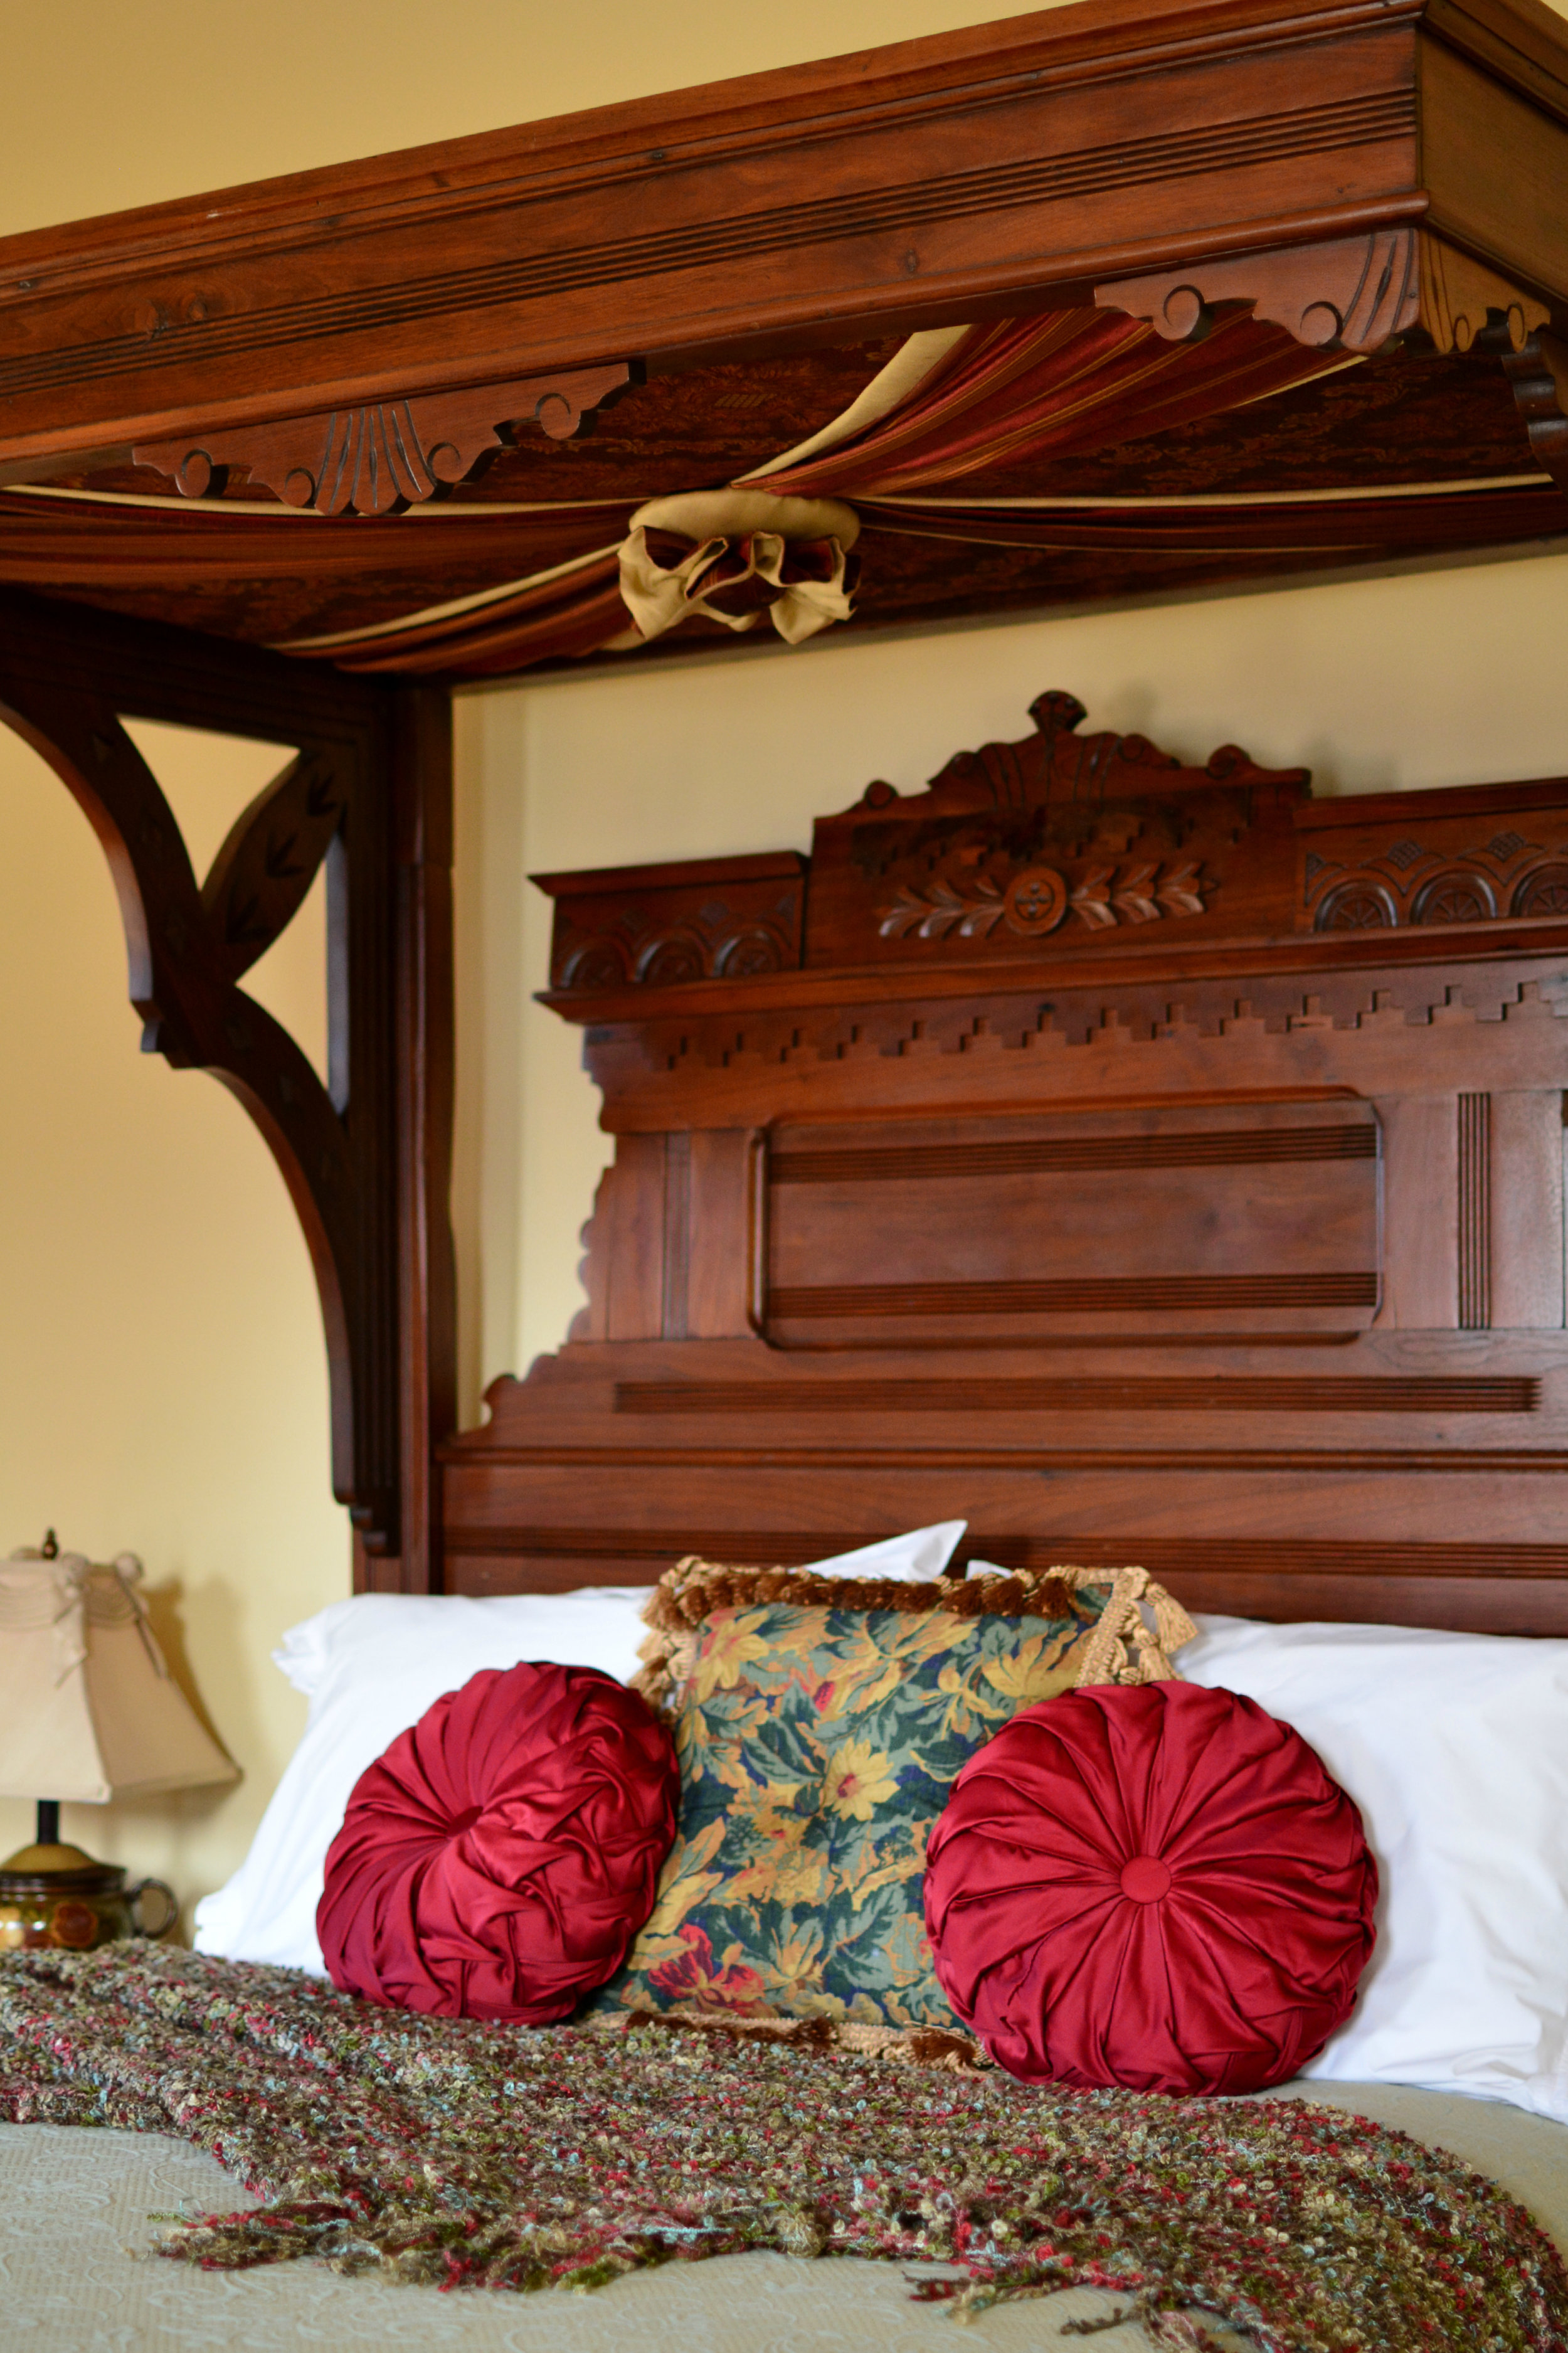 Eastlake Room - with a romantic walnut queen-size antique canopy bed?